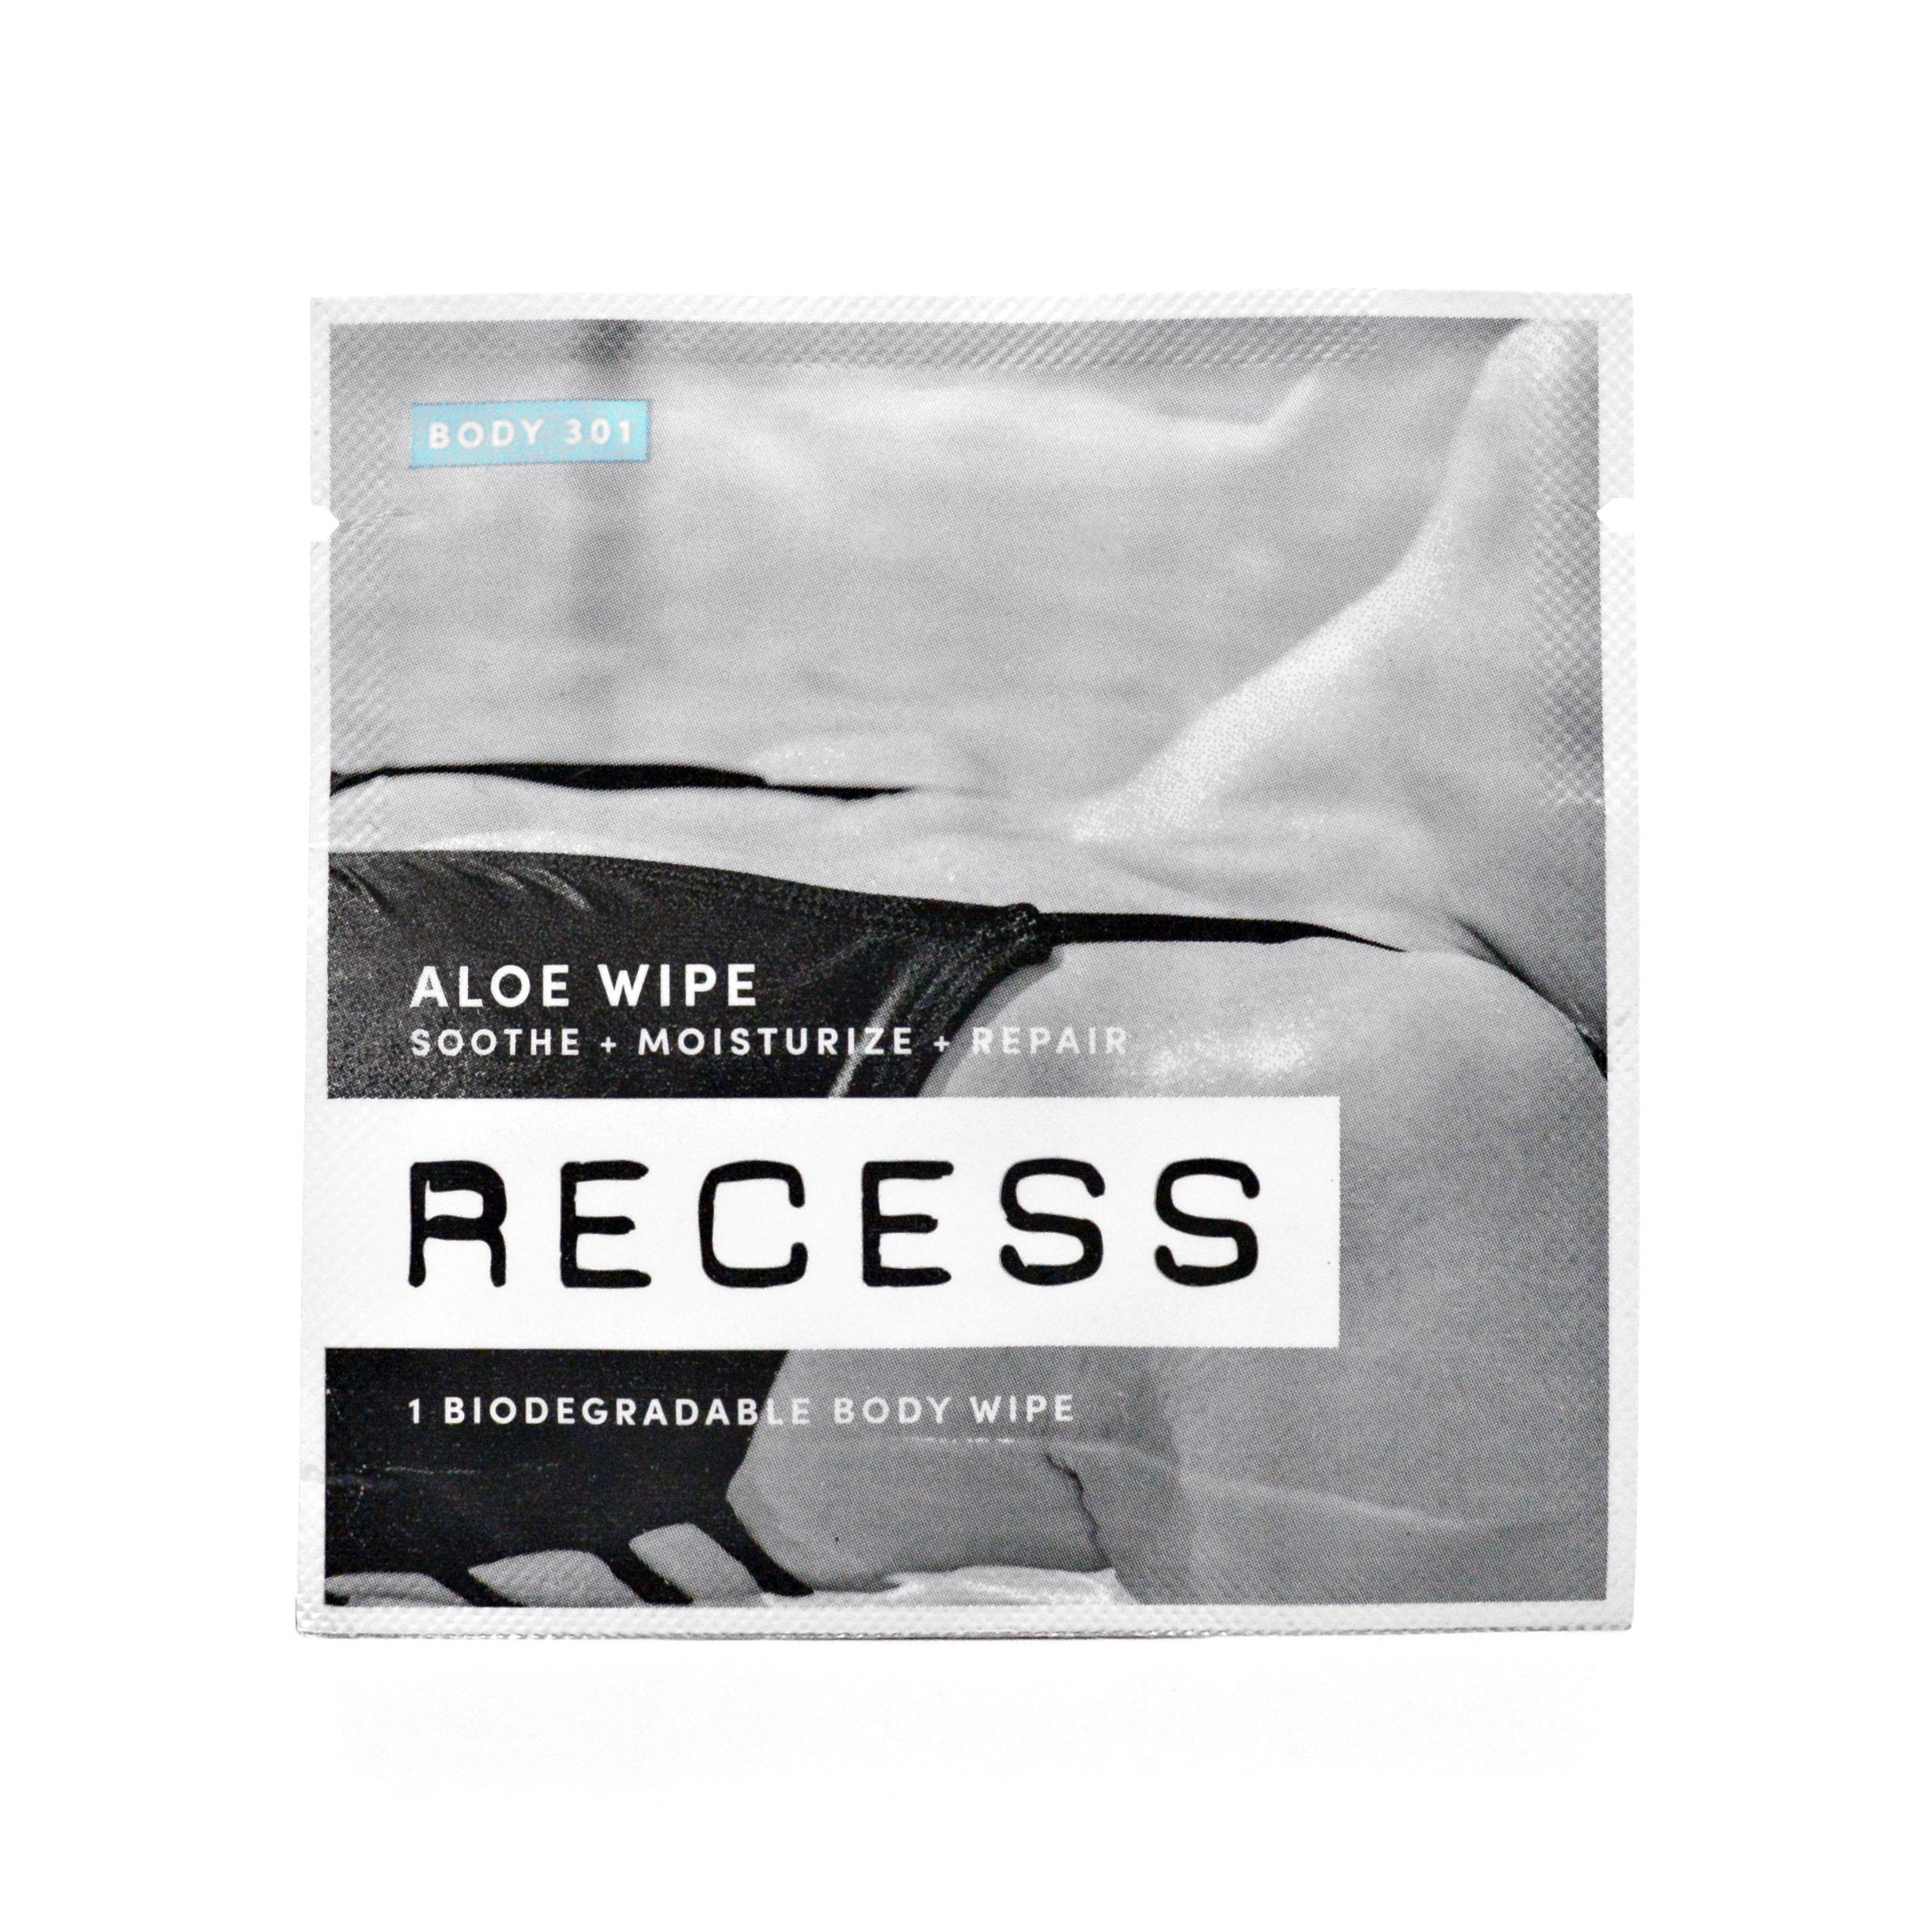 BODY 301: Aloe Wipes (Pack of 15) (743227752552)